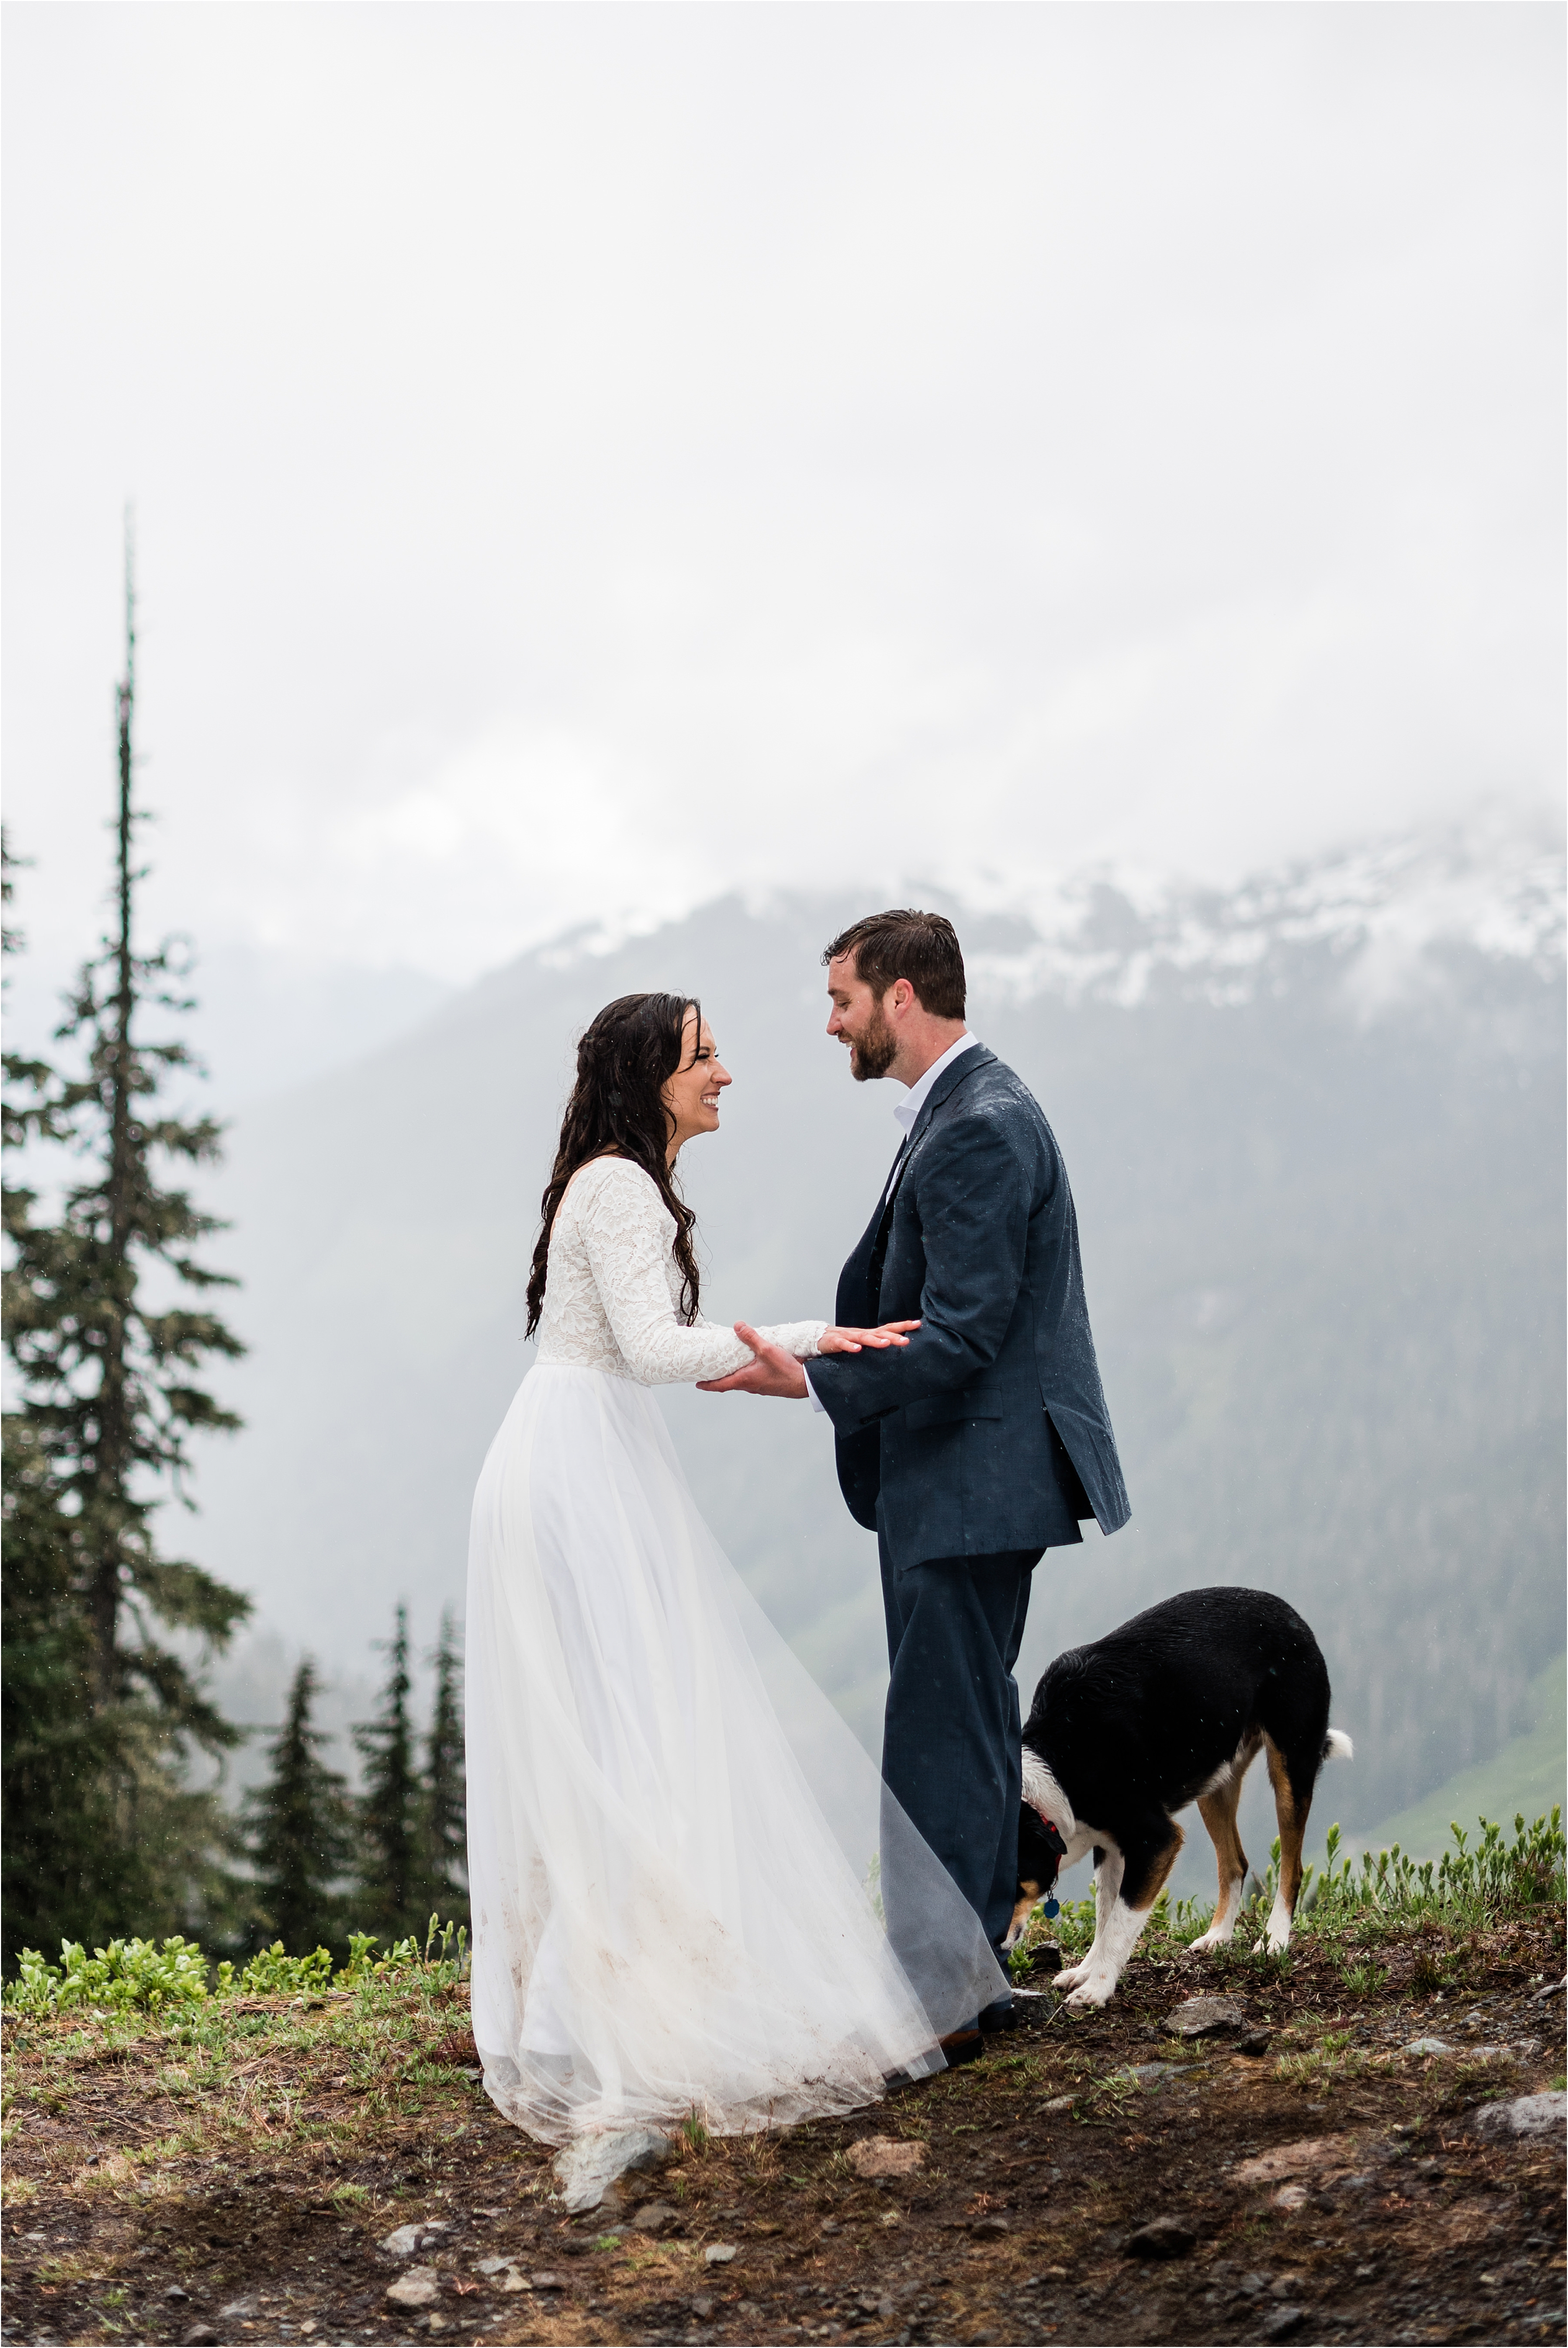 Christina & Tanner after their elopement ceremony, surrounded by the North Cascade mountains and their two dogs. Image by Forthright Photo, Seattle Elopement Photographers.